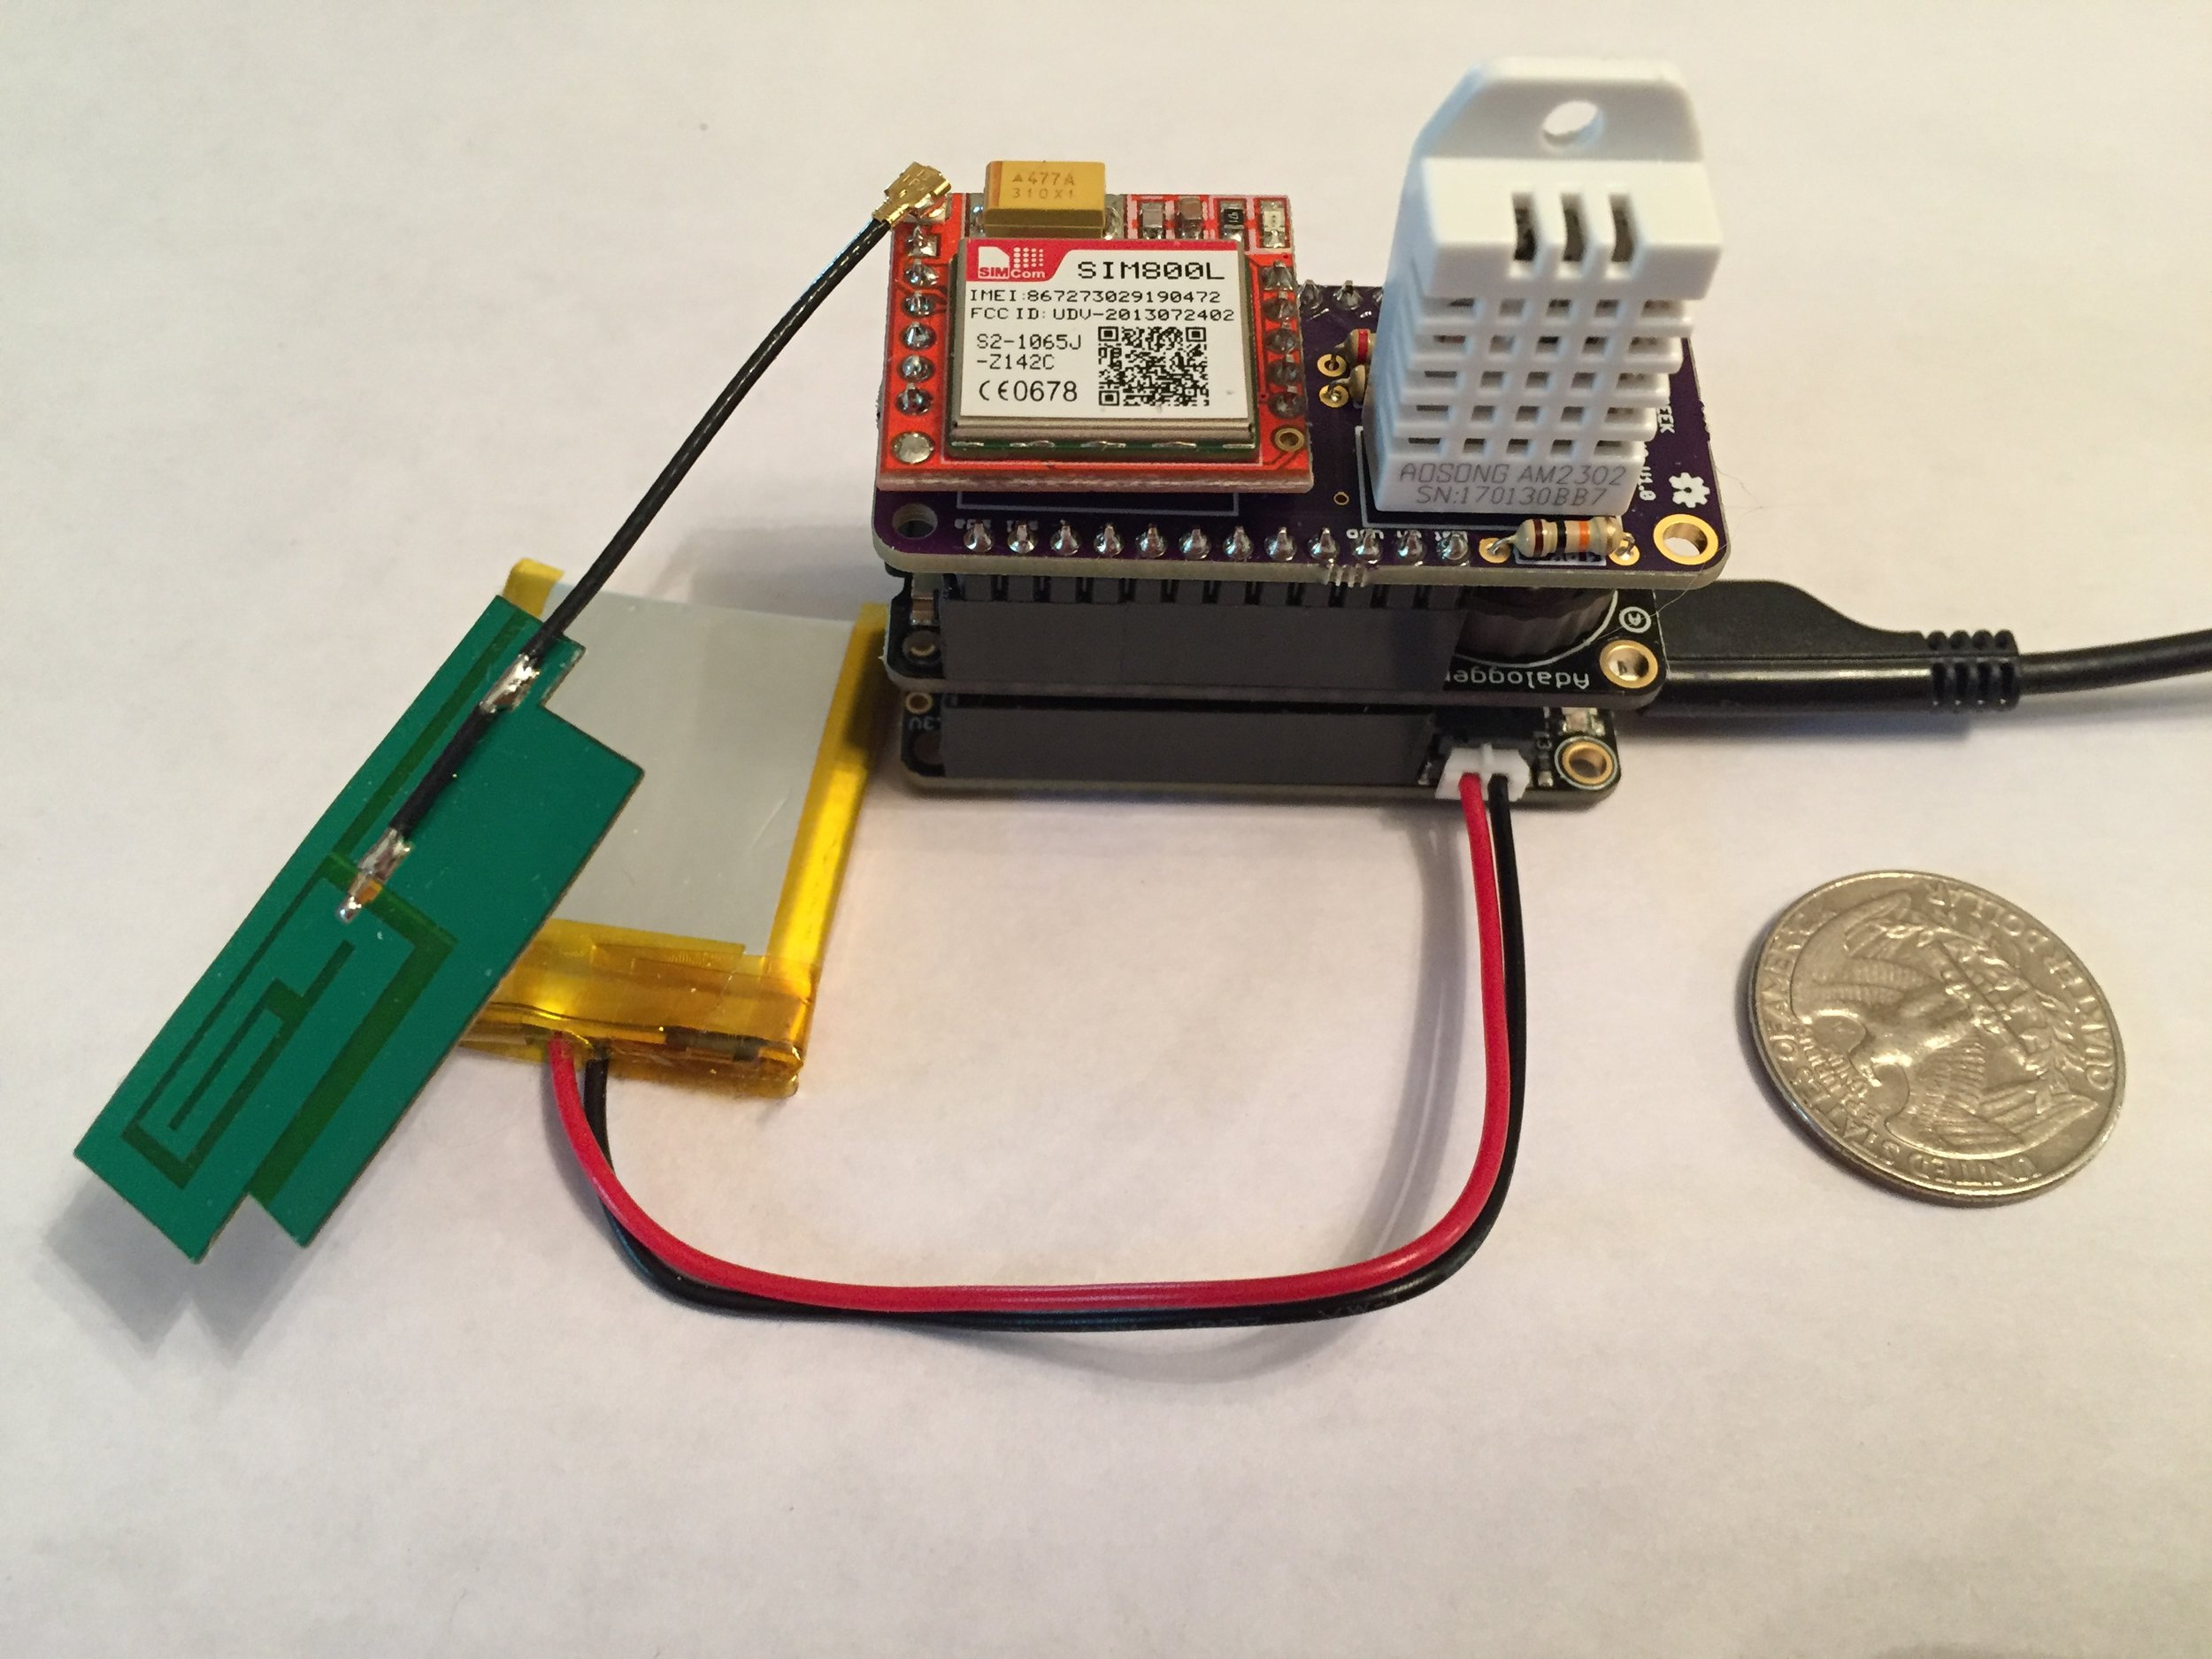 "Working prototype of the new sensor design. ""The new sensors place an emphasis on  simplicity and reliability , so things like a failed radio transmission or network connection will never get in the way of writing an accurate temperature log to the SD card."" -Ryan Boland, chief product designer of our new sensor"